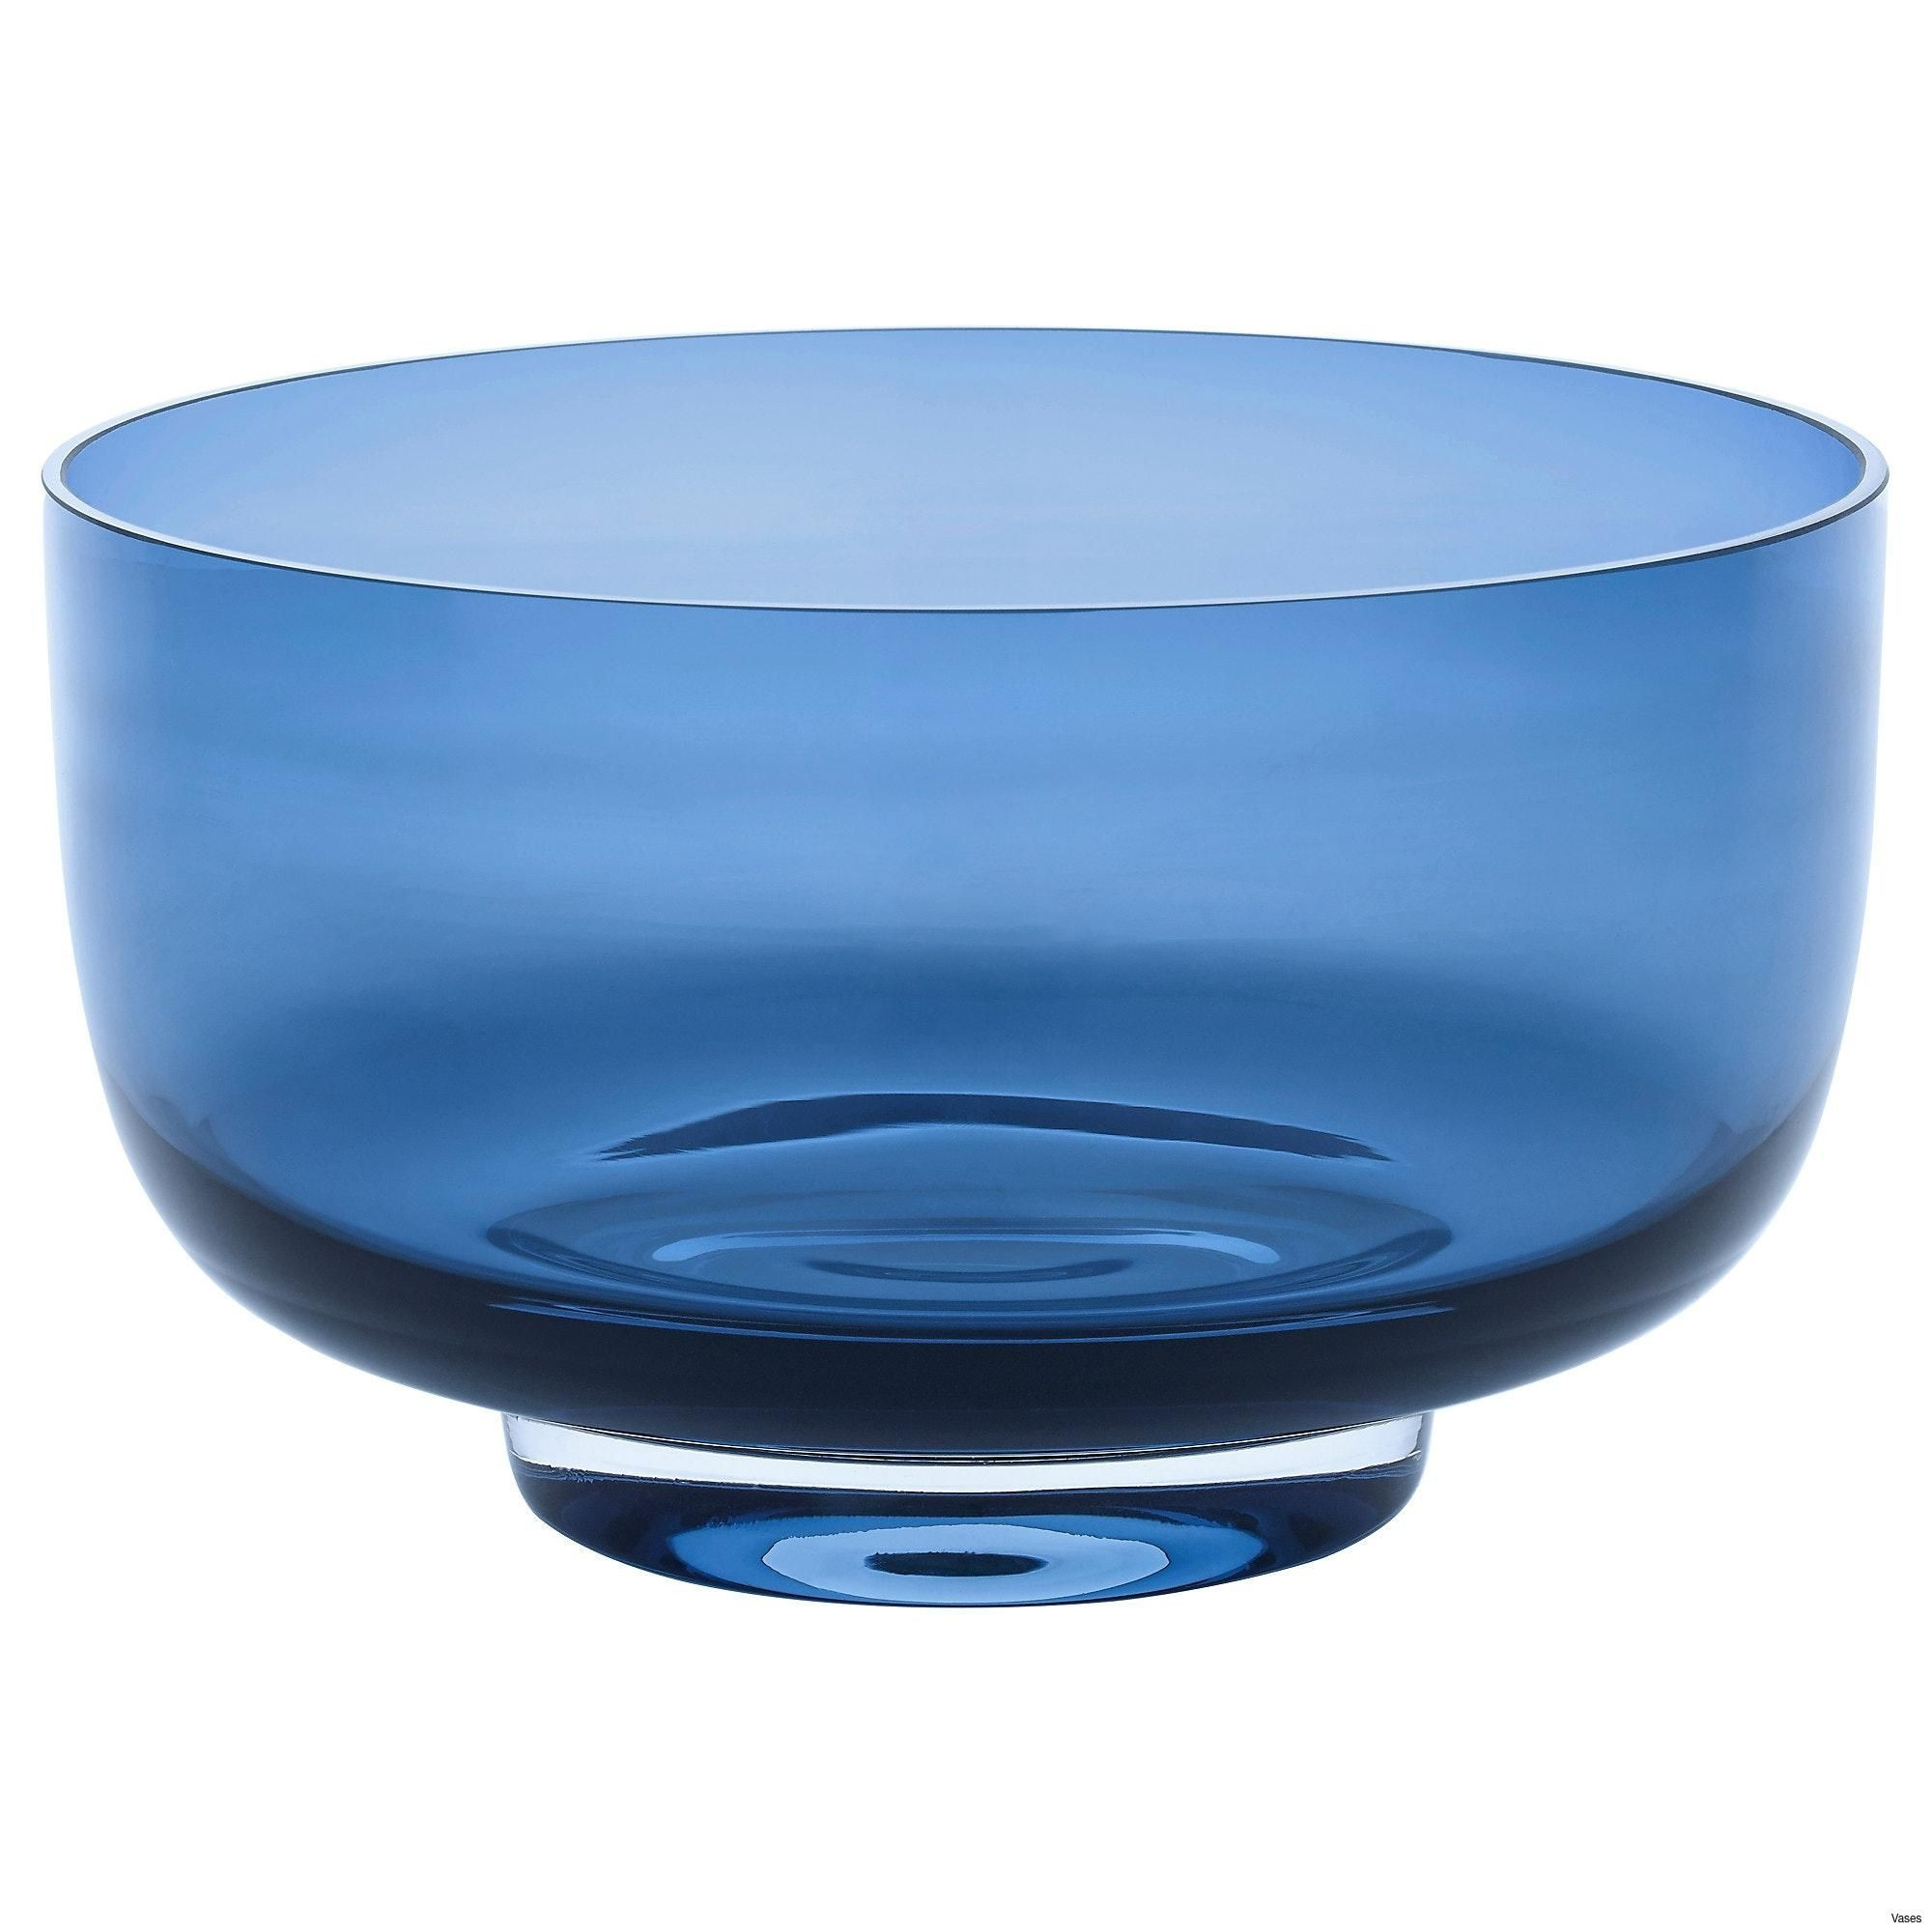 15 Perfect Blue Vases for Sale 2021 free download blue vases for sale of 23 blue crystal vase the weekly world inside decorative glass bowl new living room ikea vases awesome pe s5h